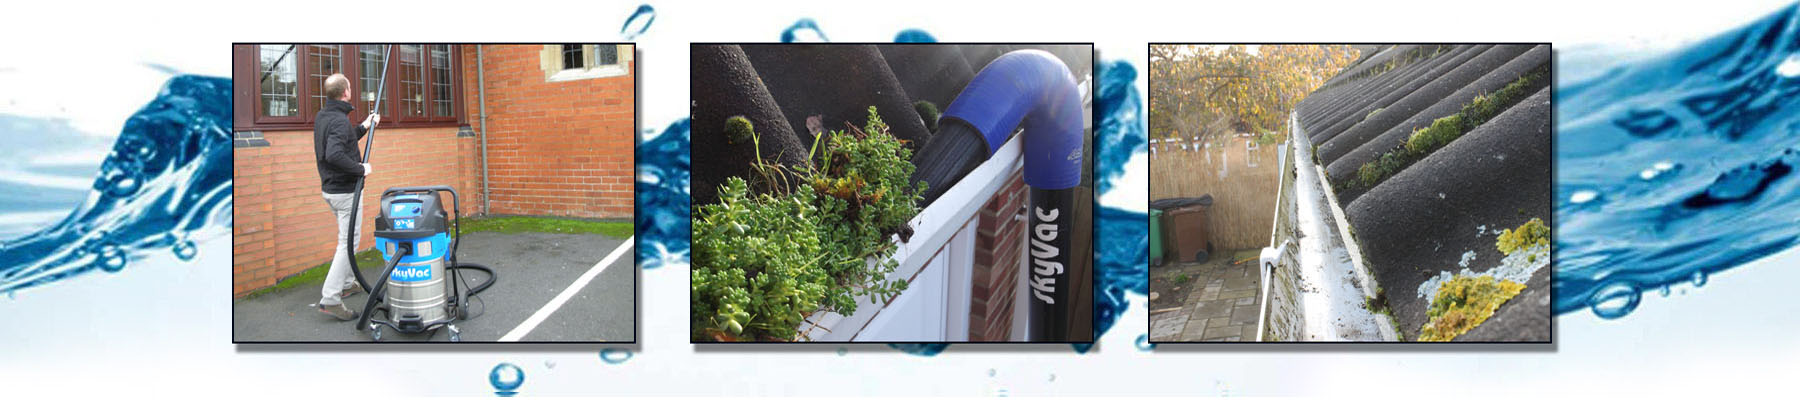 Gutter clearing with Skyvac